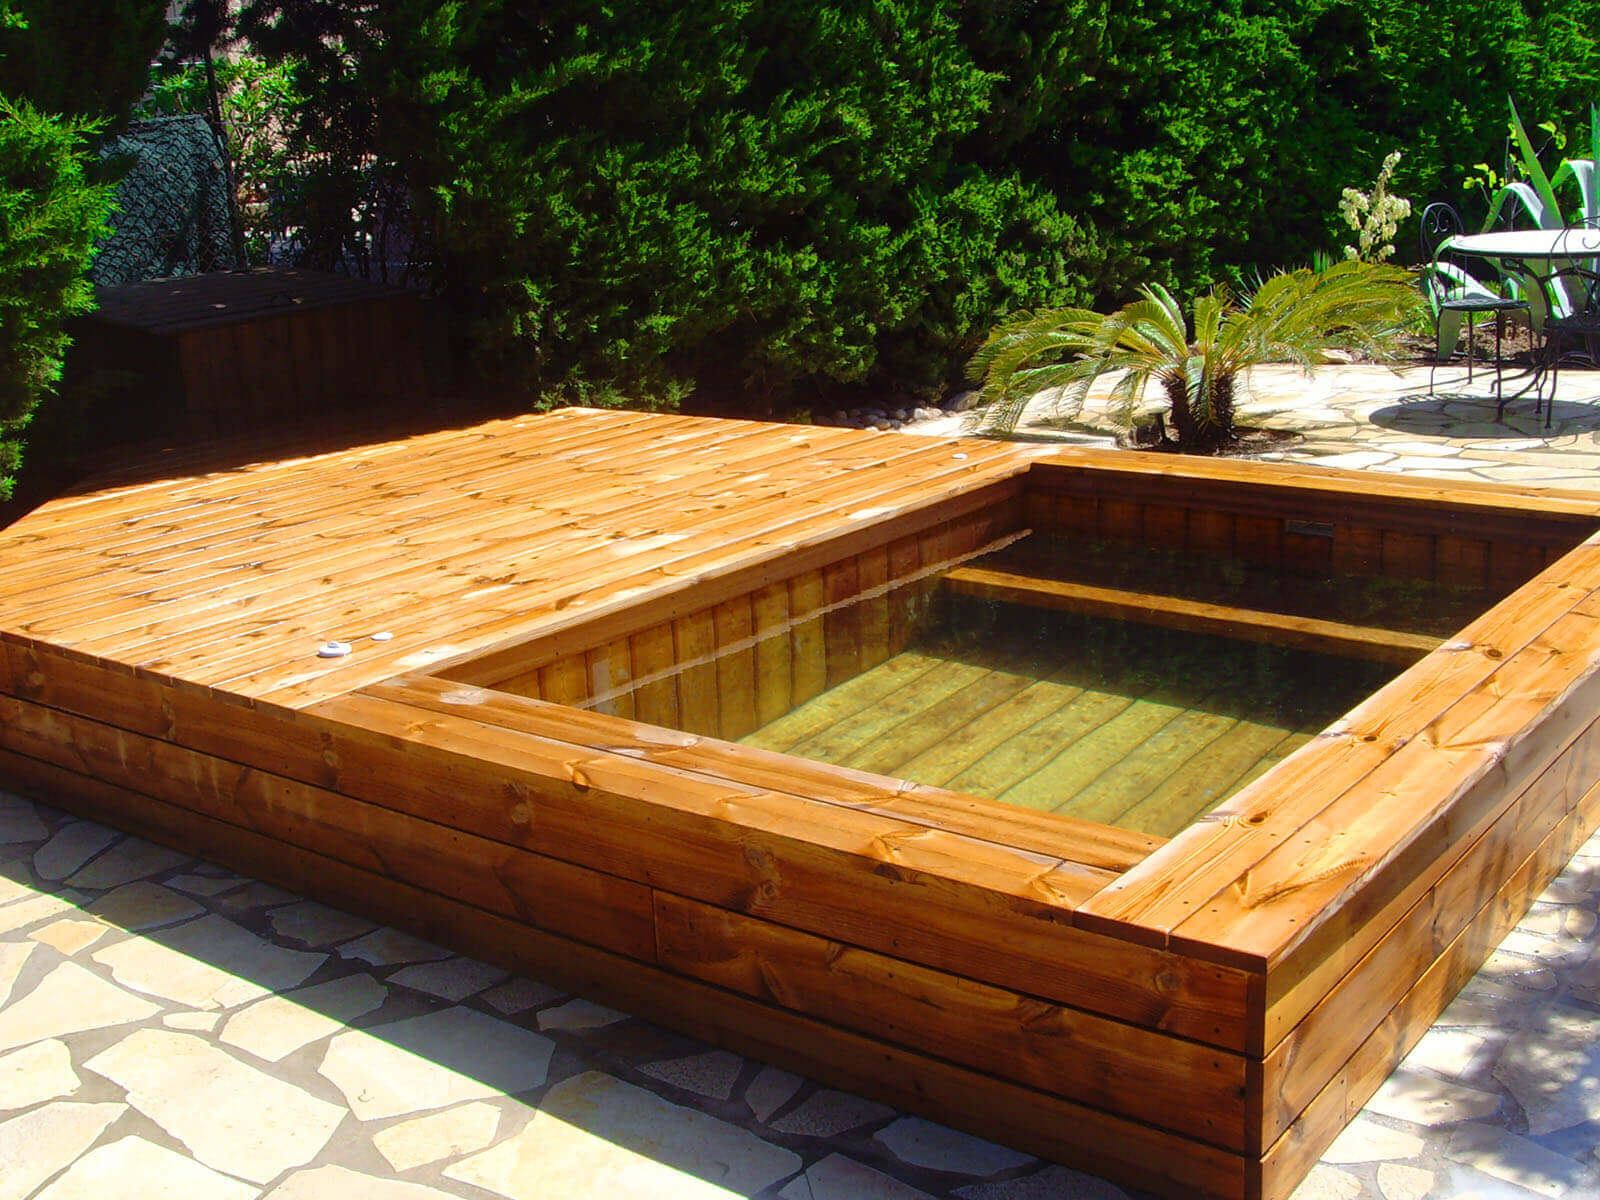 Petite piscine hors sol fashion designs for Piscine hors sol jacuzzi